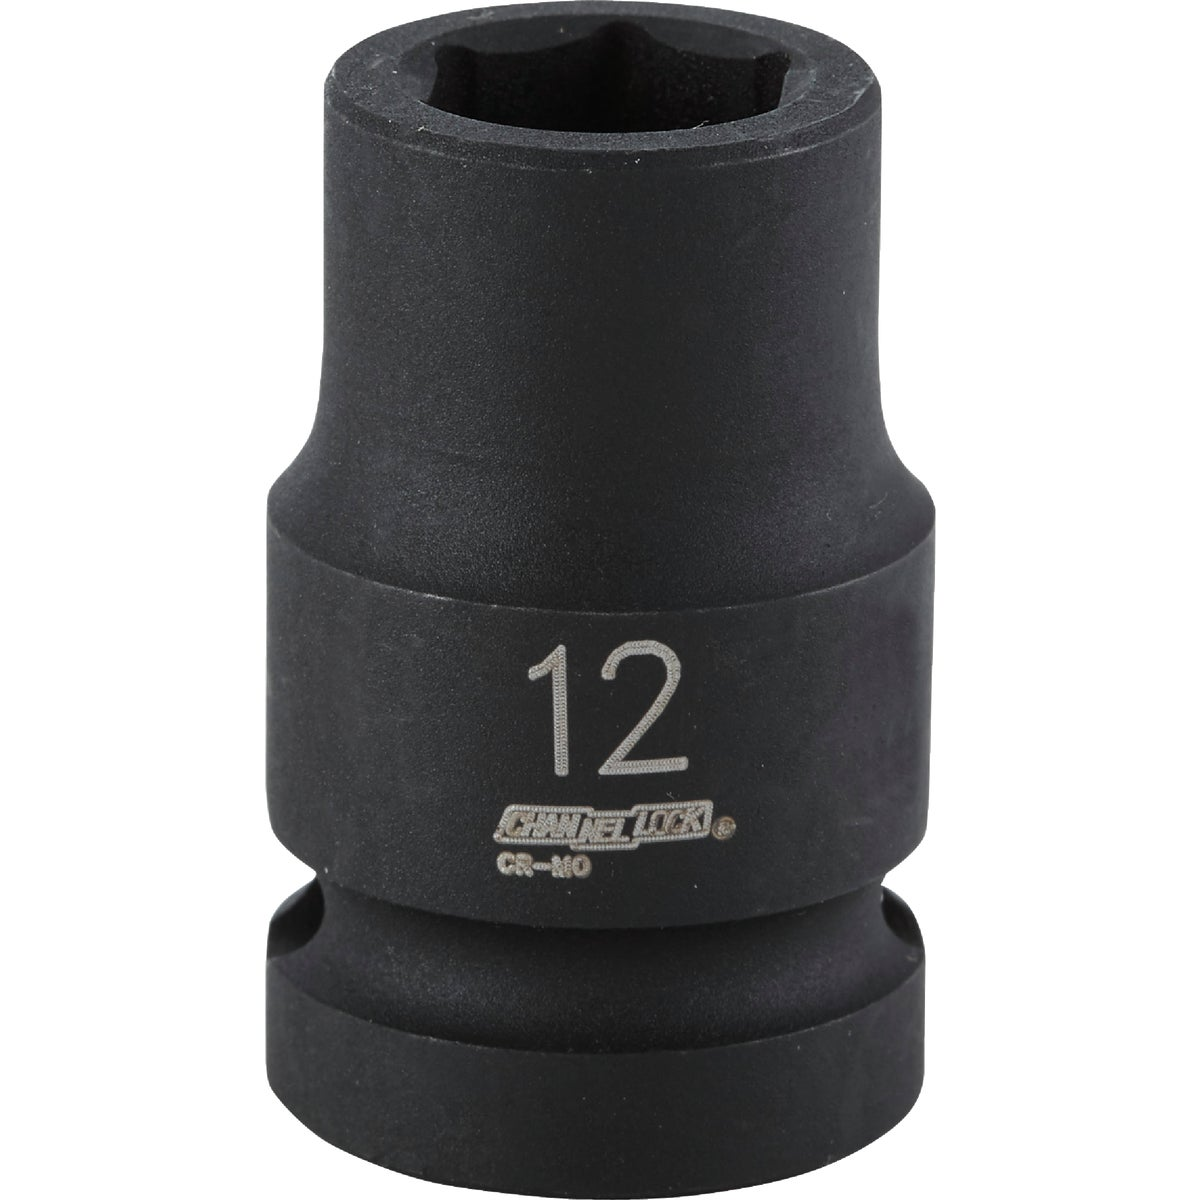 12MM IMPACT SOCKET - 35307 by Apex Tool Group